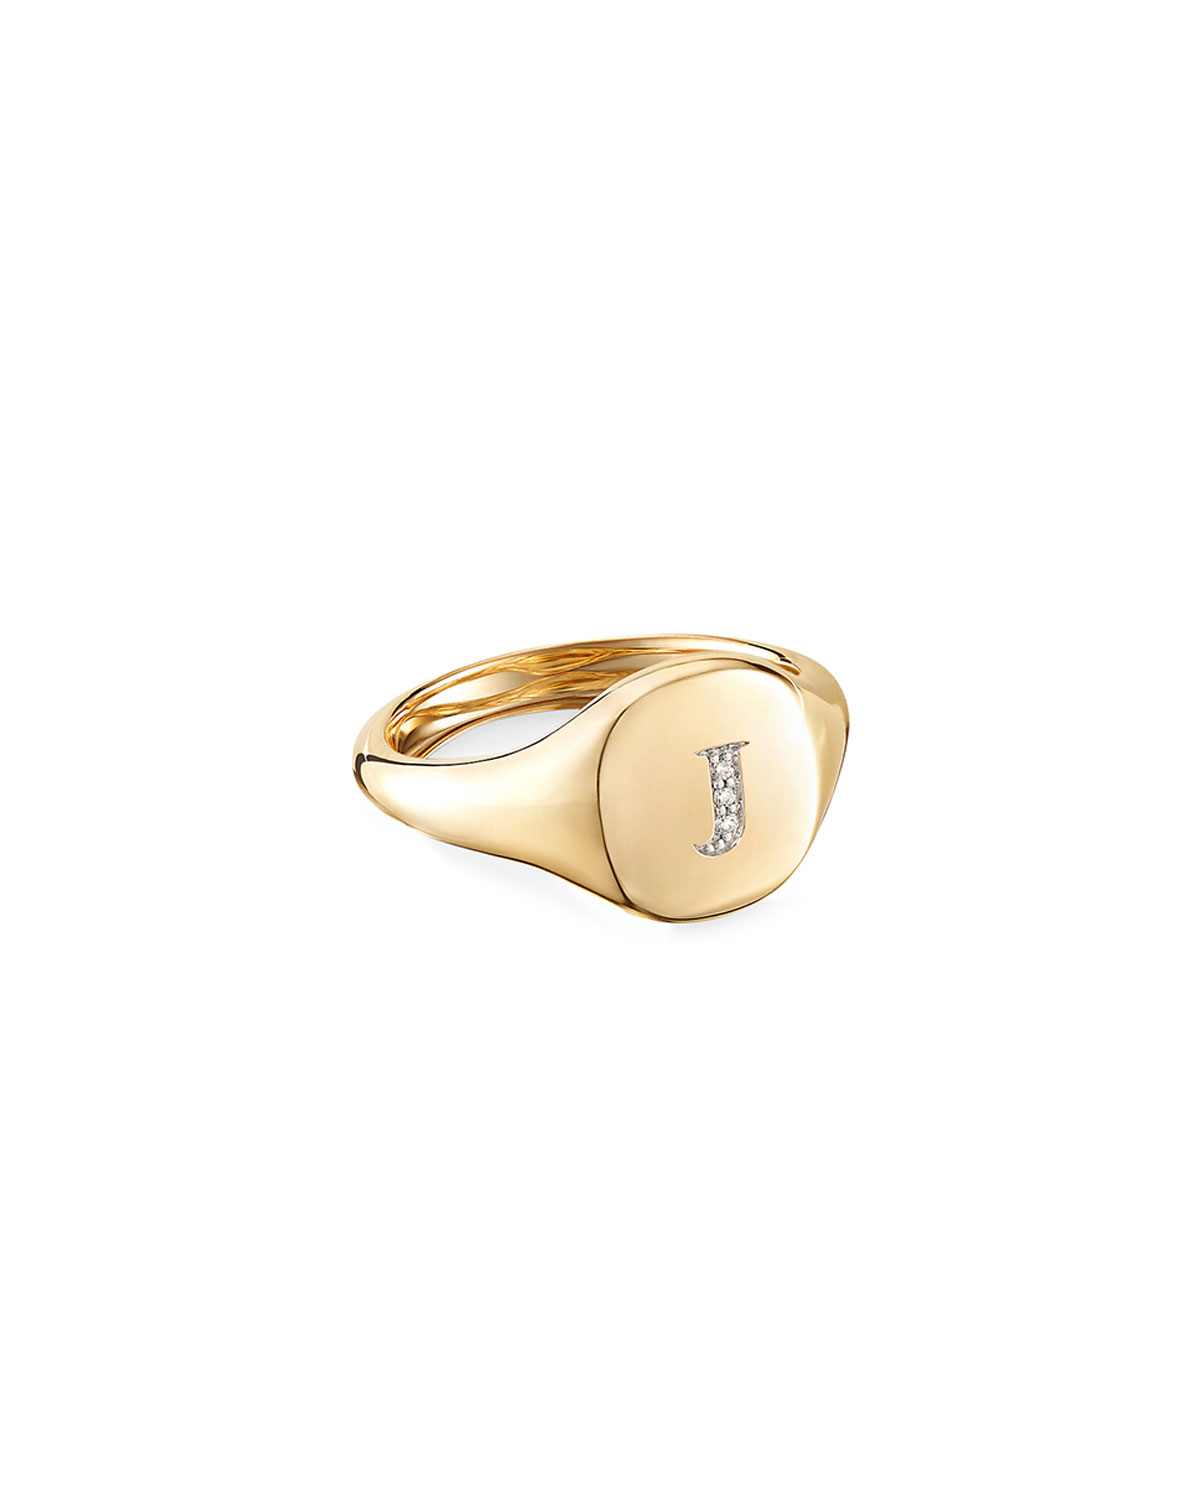 David Yurman Mini DY Initial J Pinky Ring in 18K Yellow Gold with Diamonds, Size 3.5